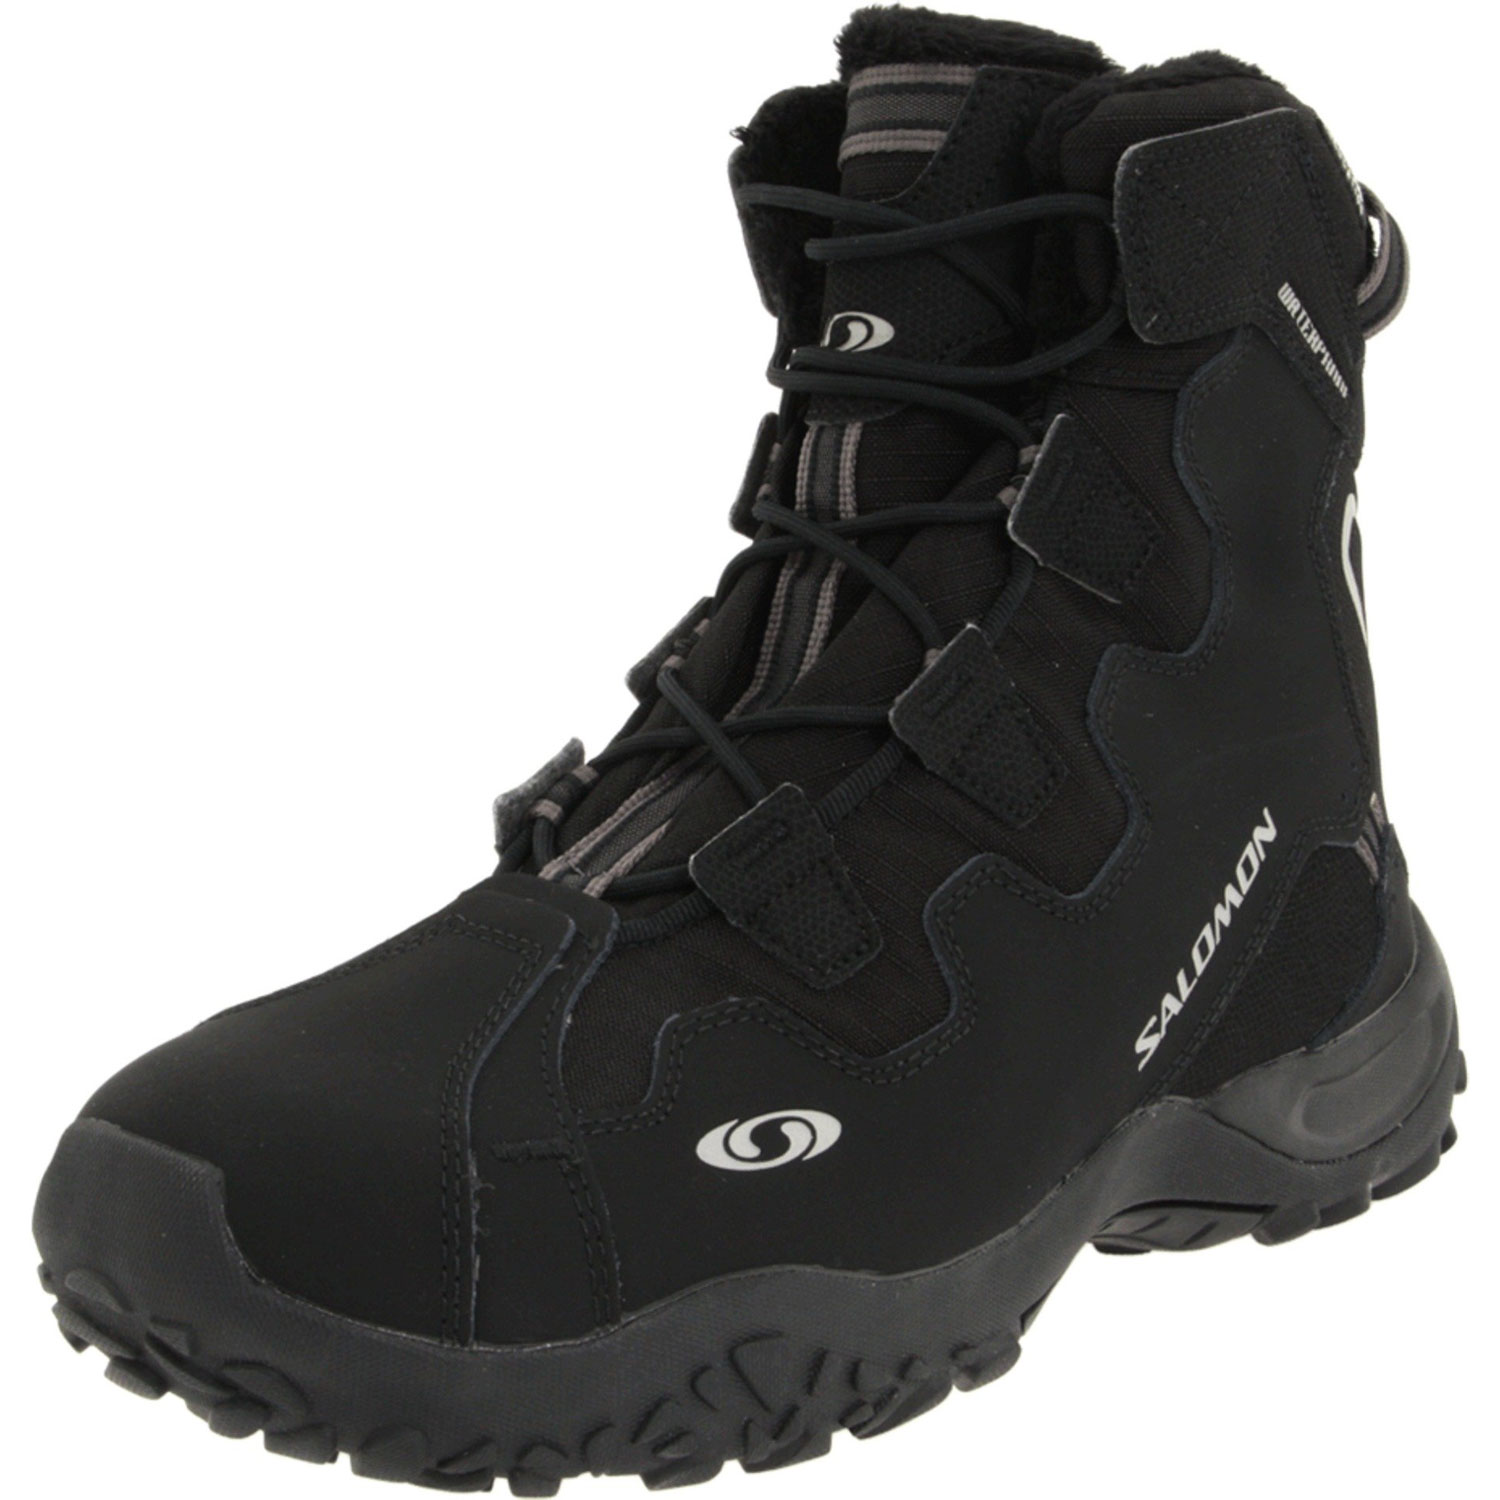 Warmest Snow Boots 9J45lehM